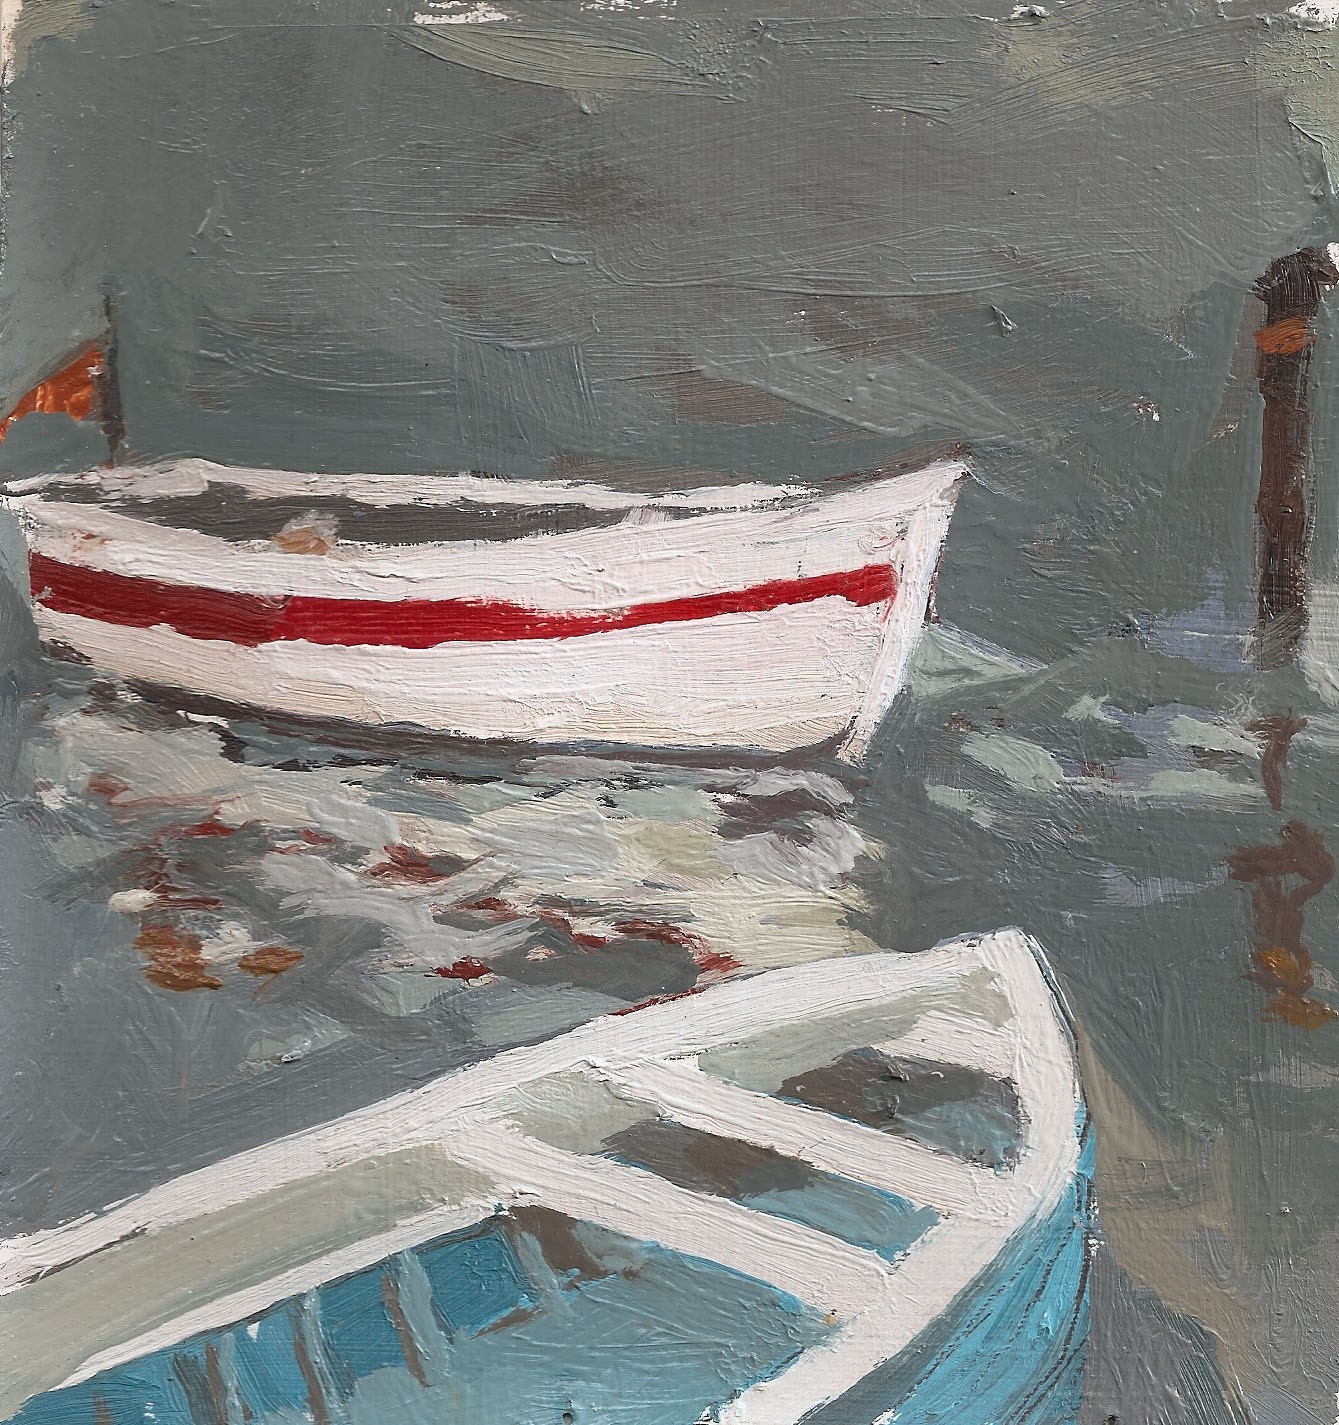 Two Boats Docked Matted 11x11 Archival Print By